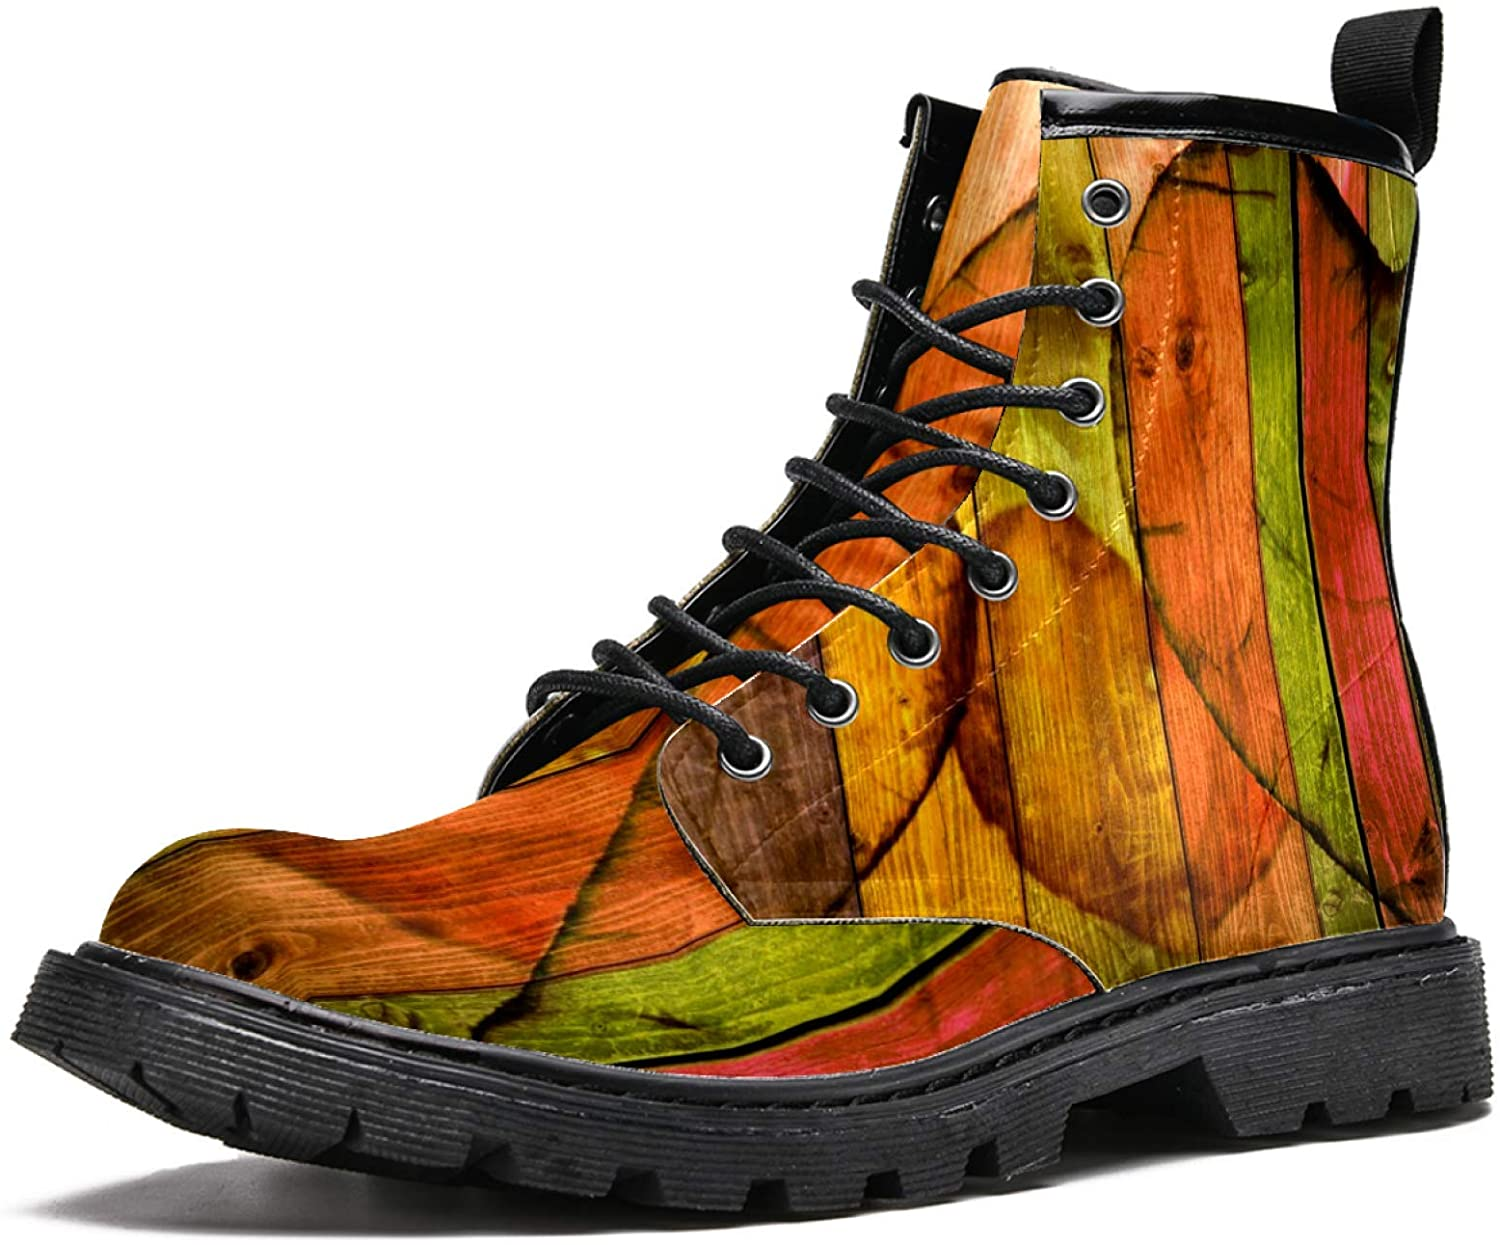 LORVIES Colorful Wood with Heart Men's High Top Boots Lace Up Casual Leather Ankle Shoes